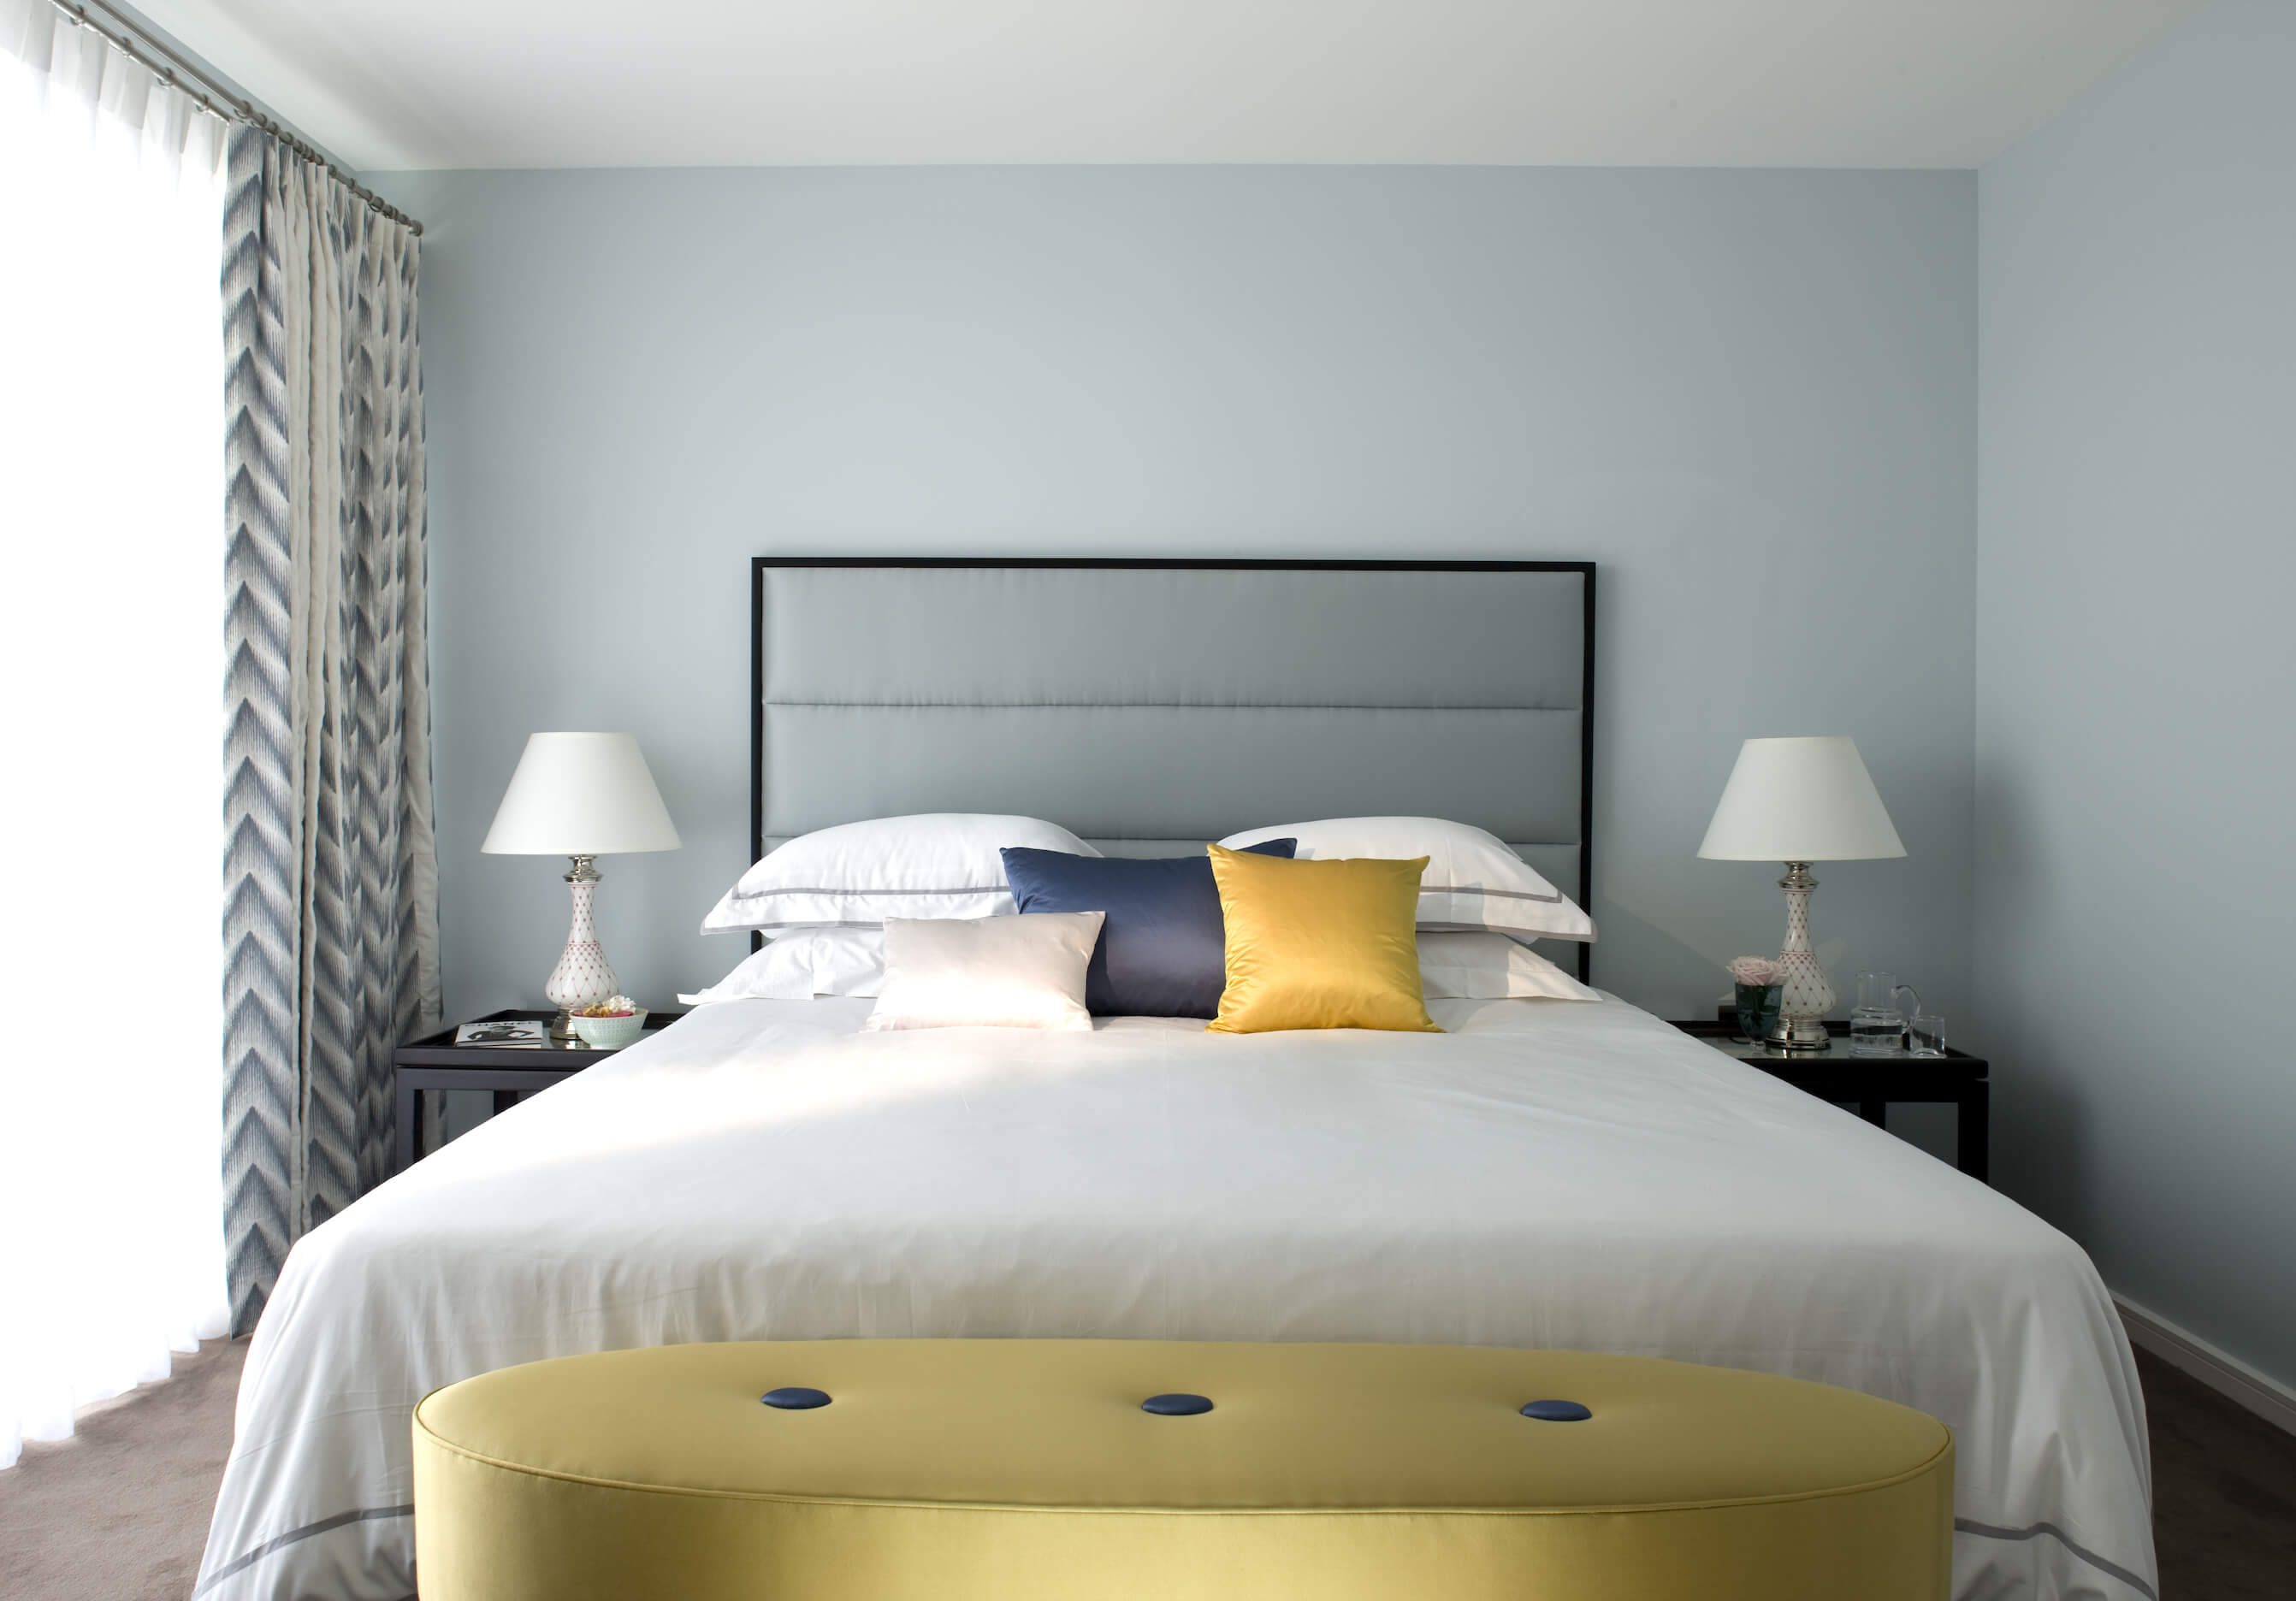 In the bedroom the gold accents on white are joined by bold blue tones, as seen on the pillows and oval ottoman at the foot of the bed. Soft sky blue walls brighten the space.